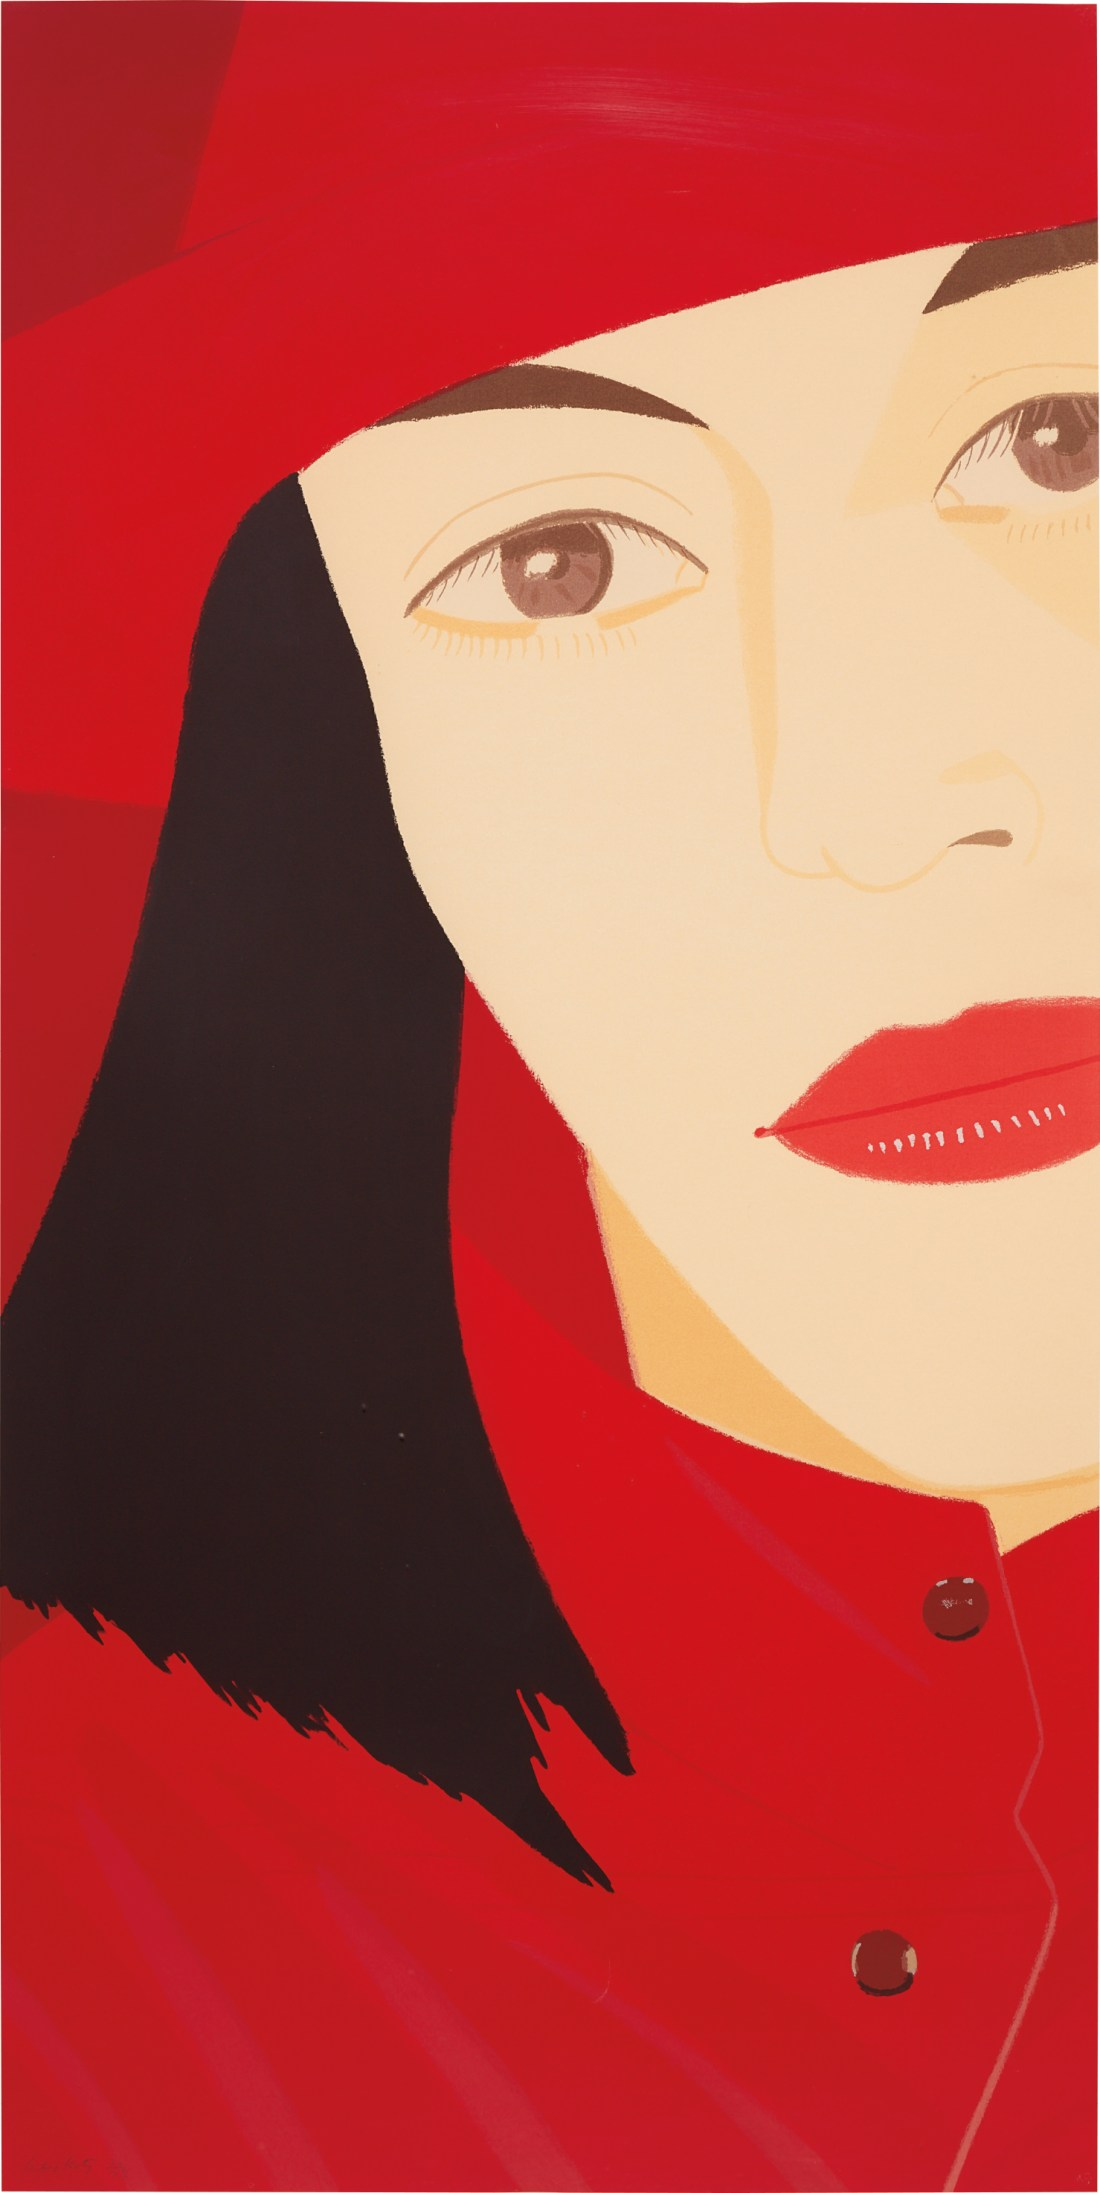 Red Coat, a 1983 limited edition screenprint co-published by artist Alex Katz and Simca Print Artists. It is number 70 of 73, and there were 12 artist's proofs.